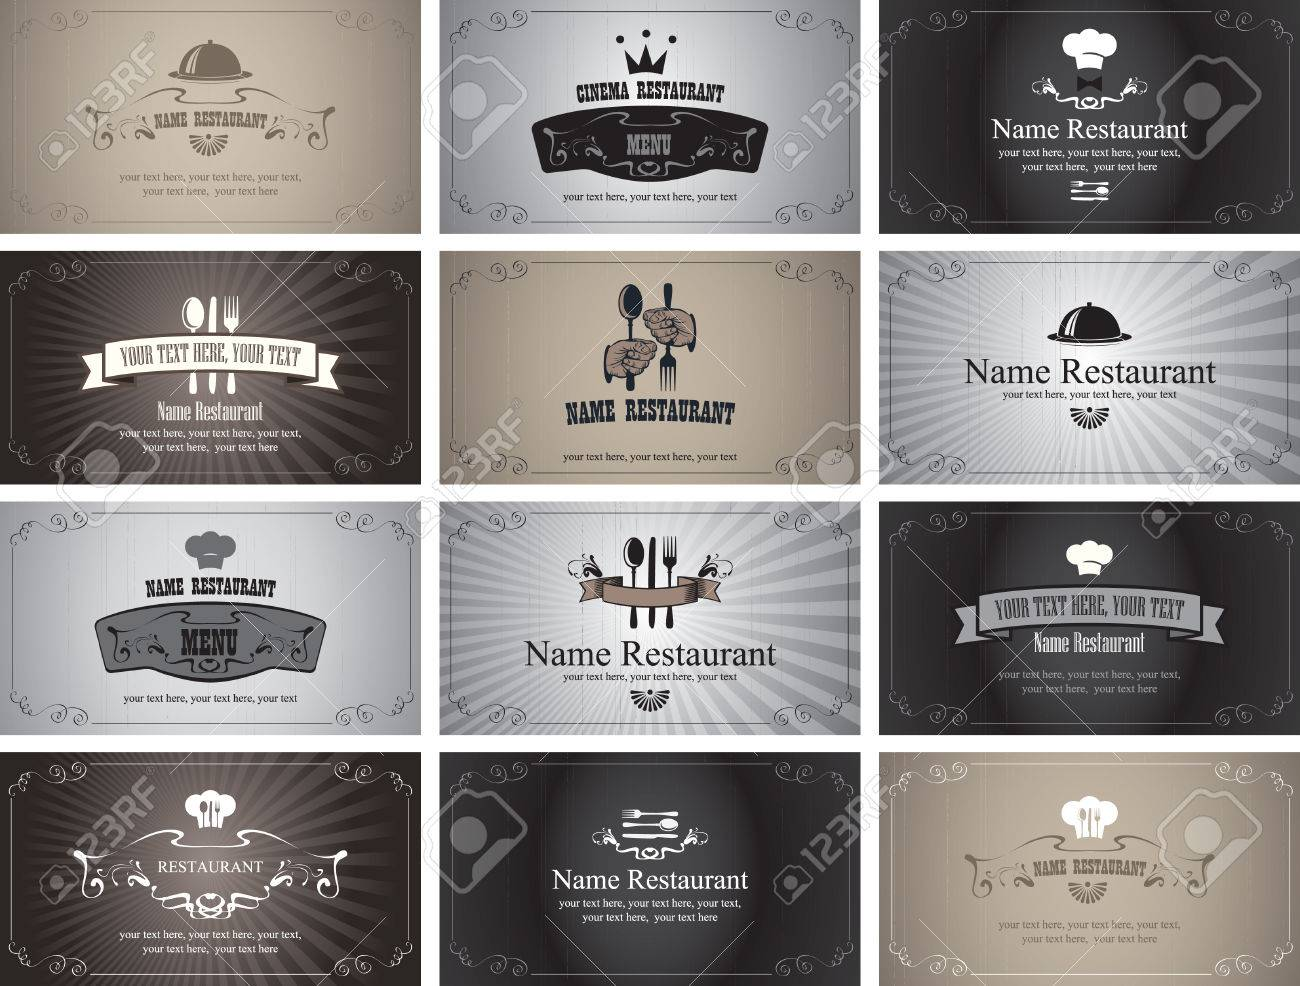 Styles of business cards gallery free business cards styles of business cards choice image free business cards advanta business credit card choice image free magicingreecefo Choice Image